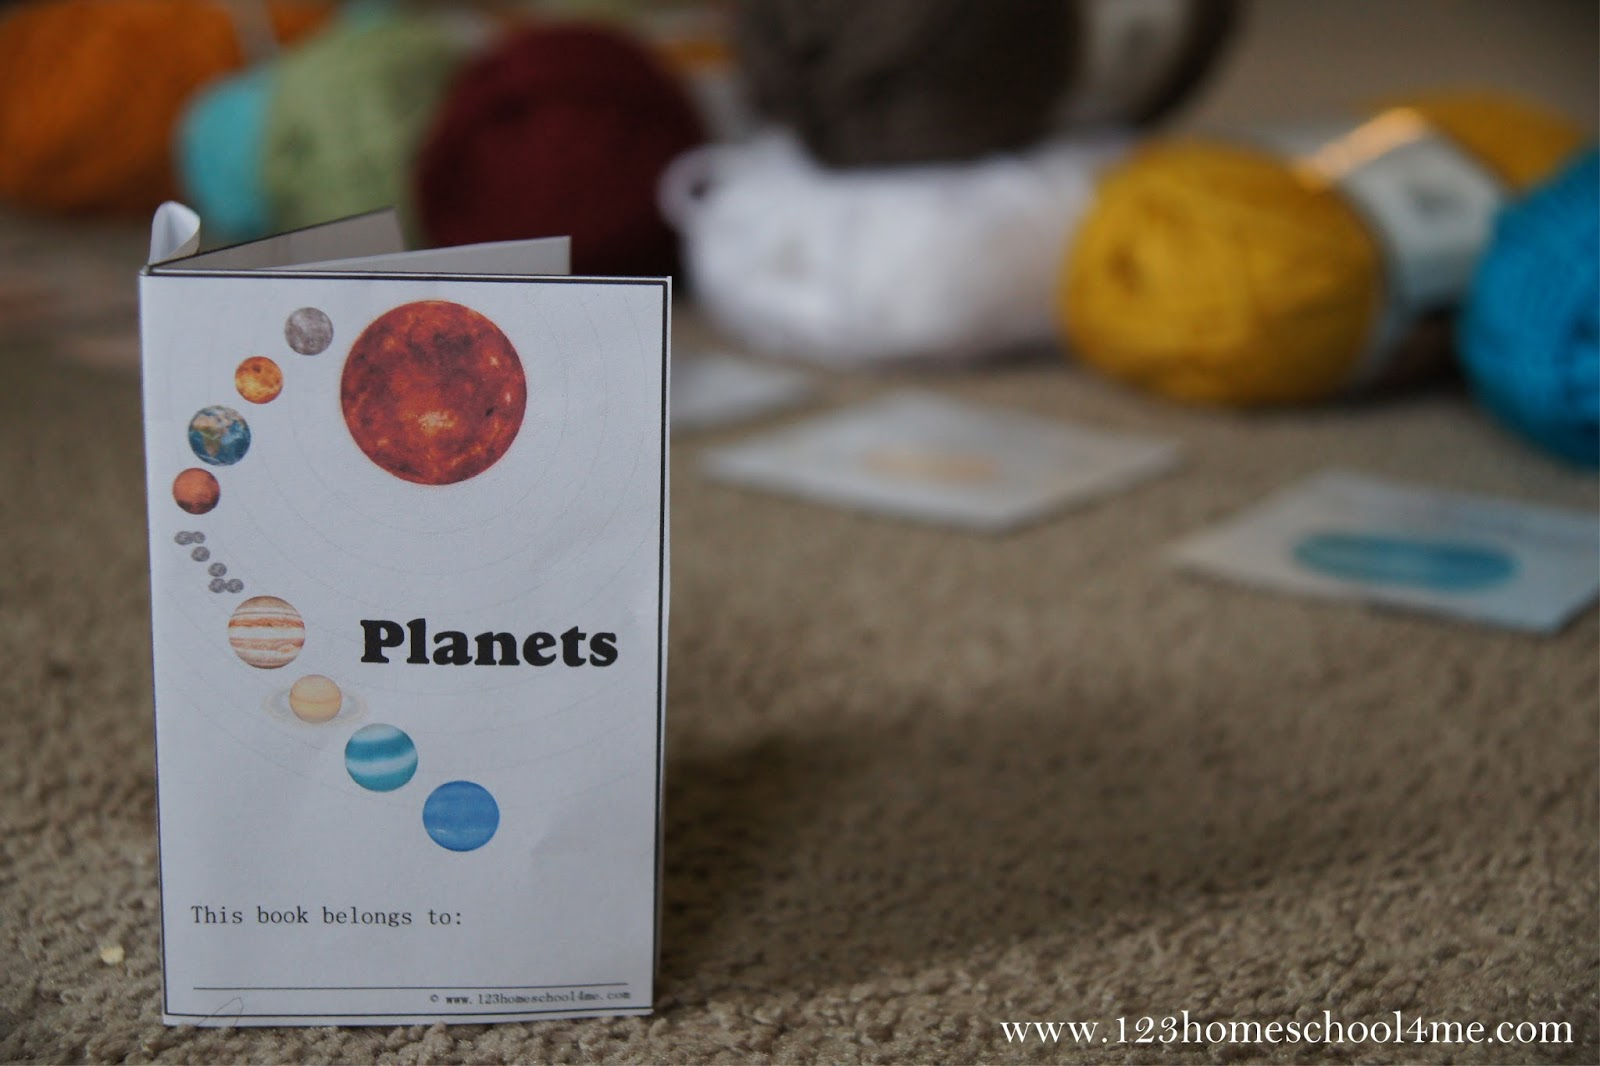 Free Printable Books For 5Th Graders Free Planet Mini Book 1600×1066 - Free Printable Books For 5Th Graders